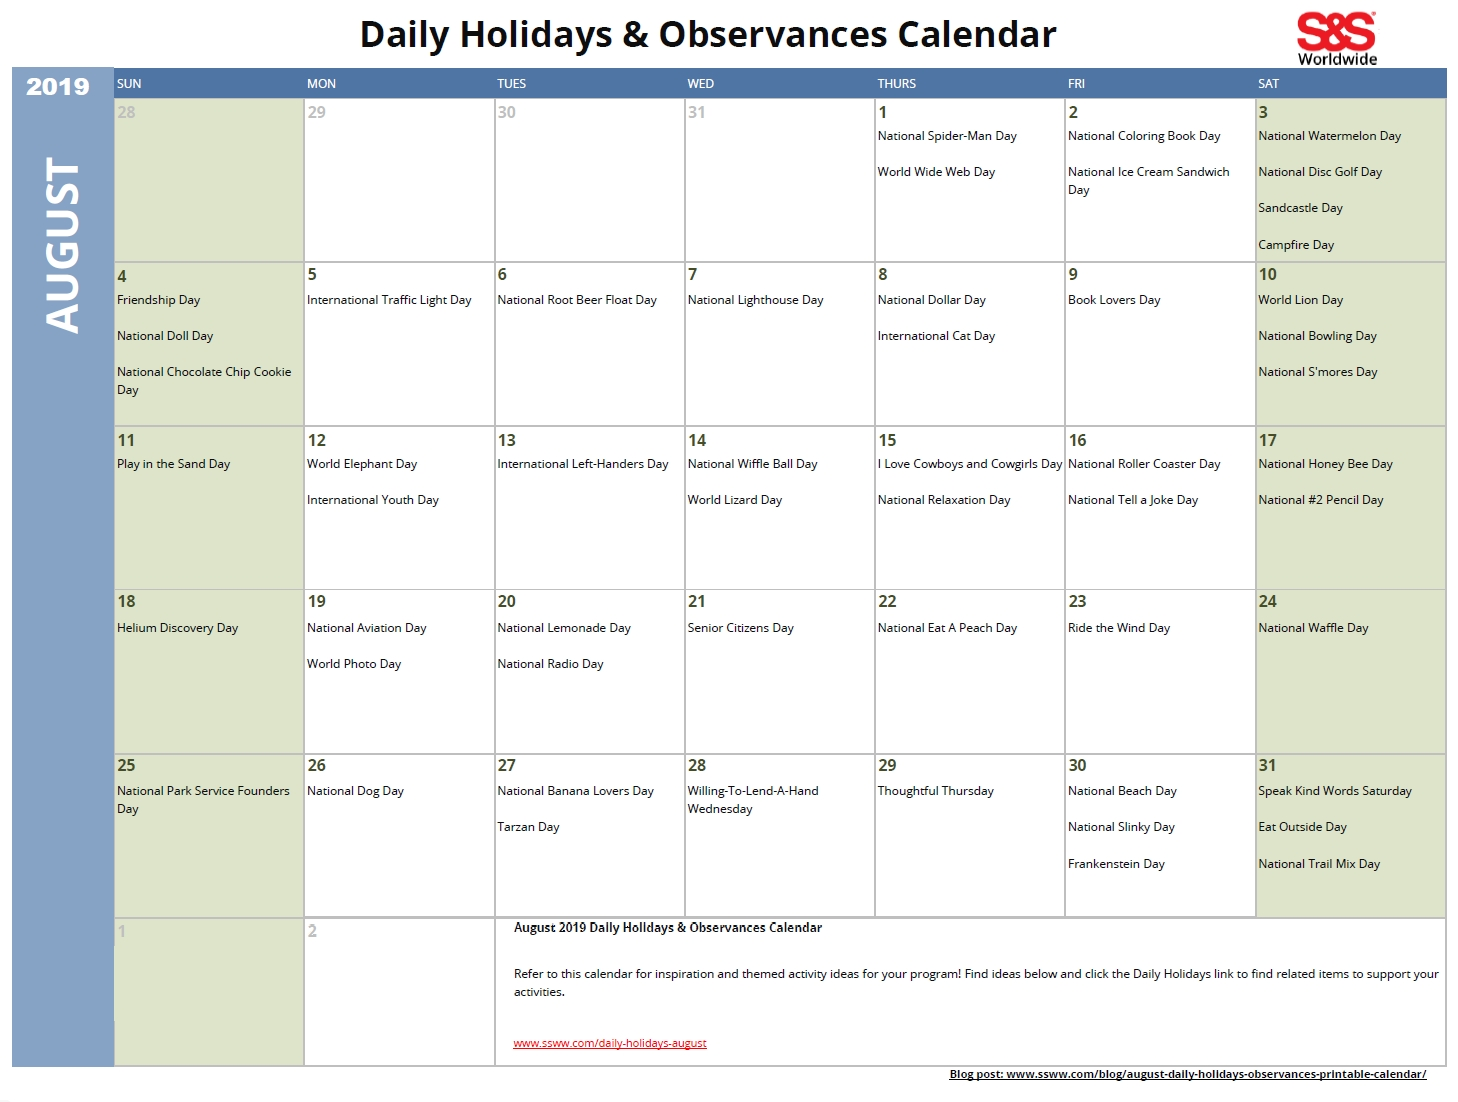 April Daily Holidays & Observances Printable Calendar - S&s Blog throughout Printable Calendar Day By Day